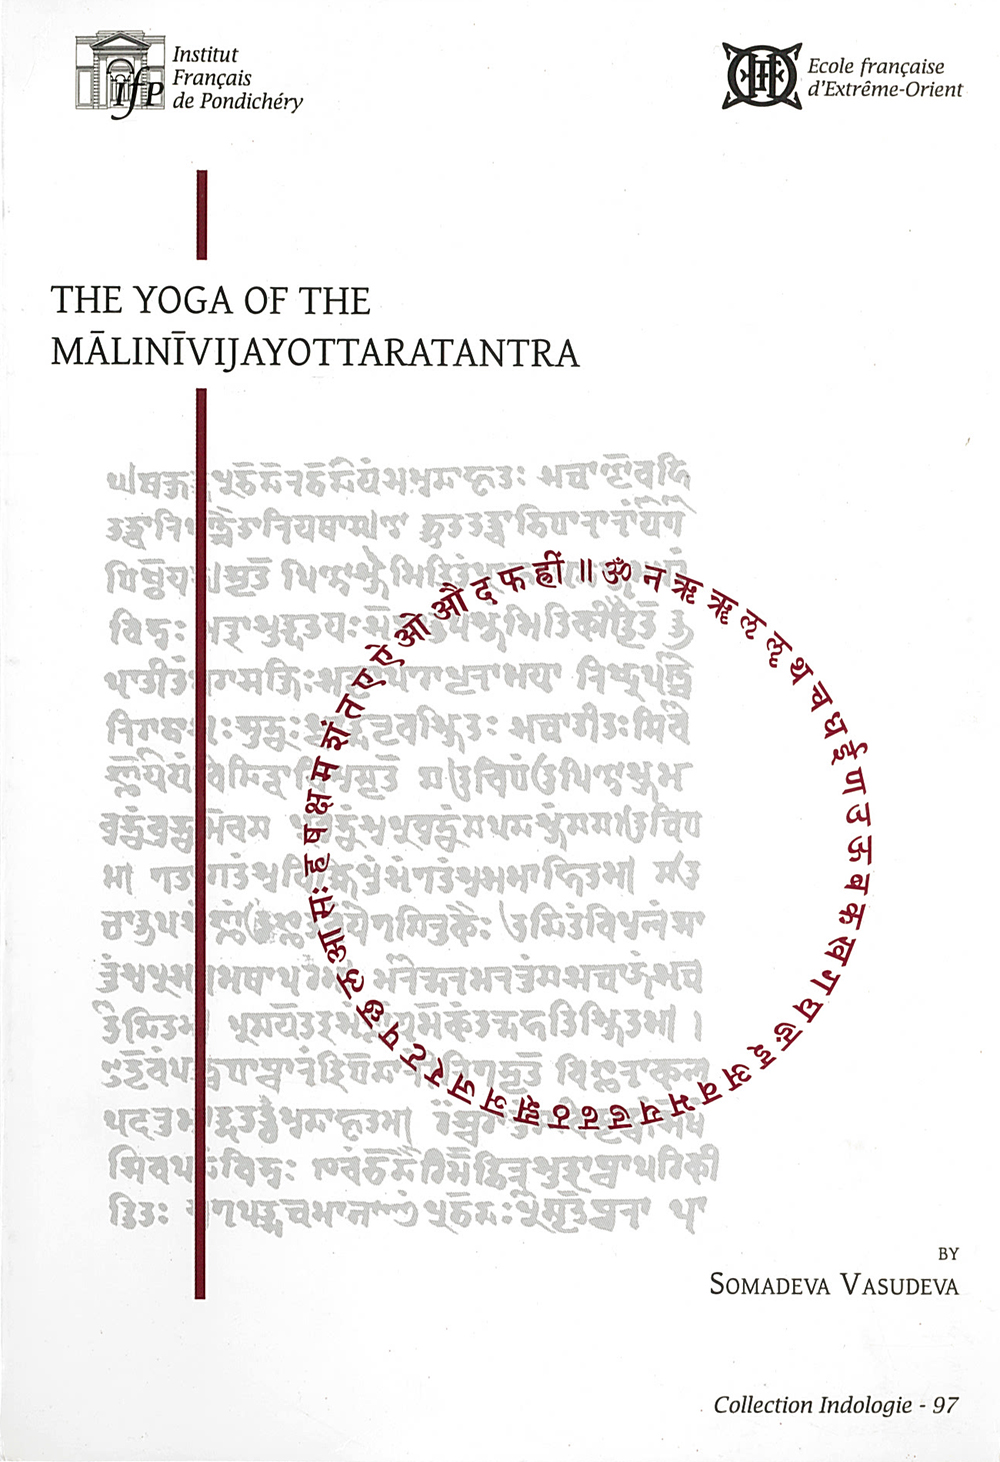 The Yoga of the Malinivijayottaratantra. Chapters 1-4, 7, I2-17.